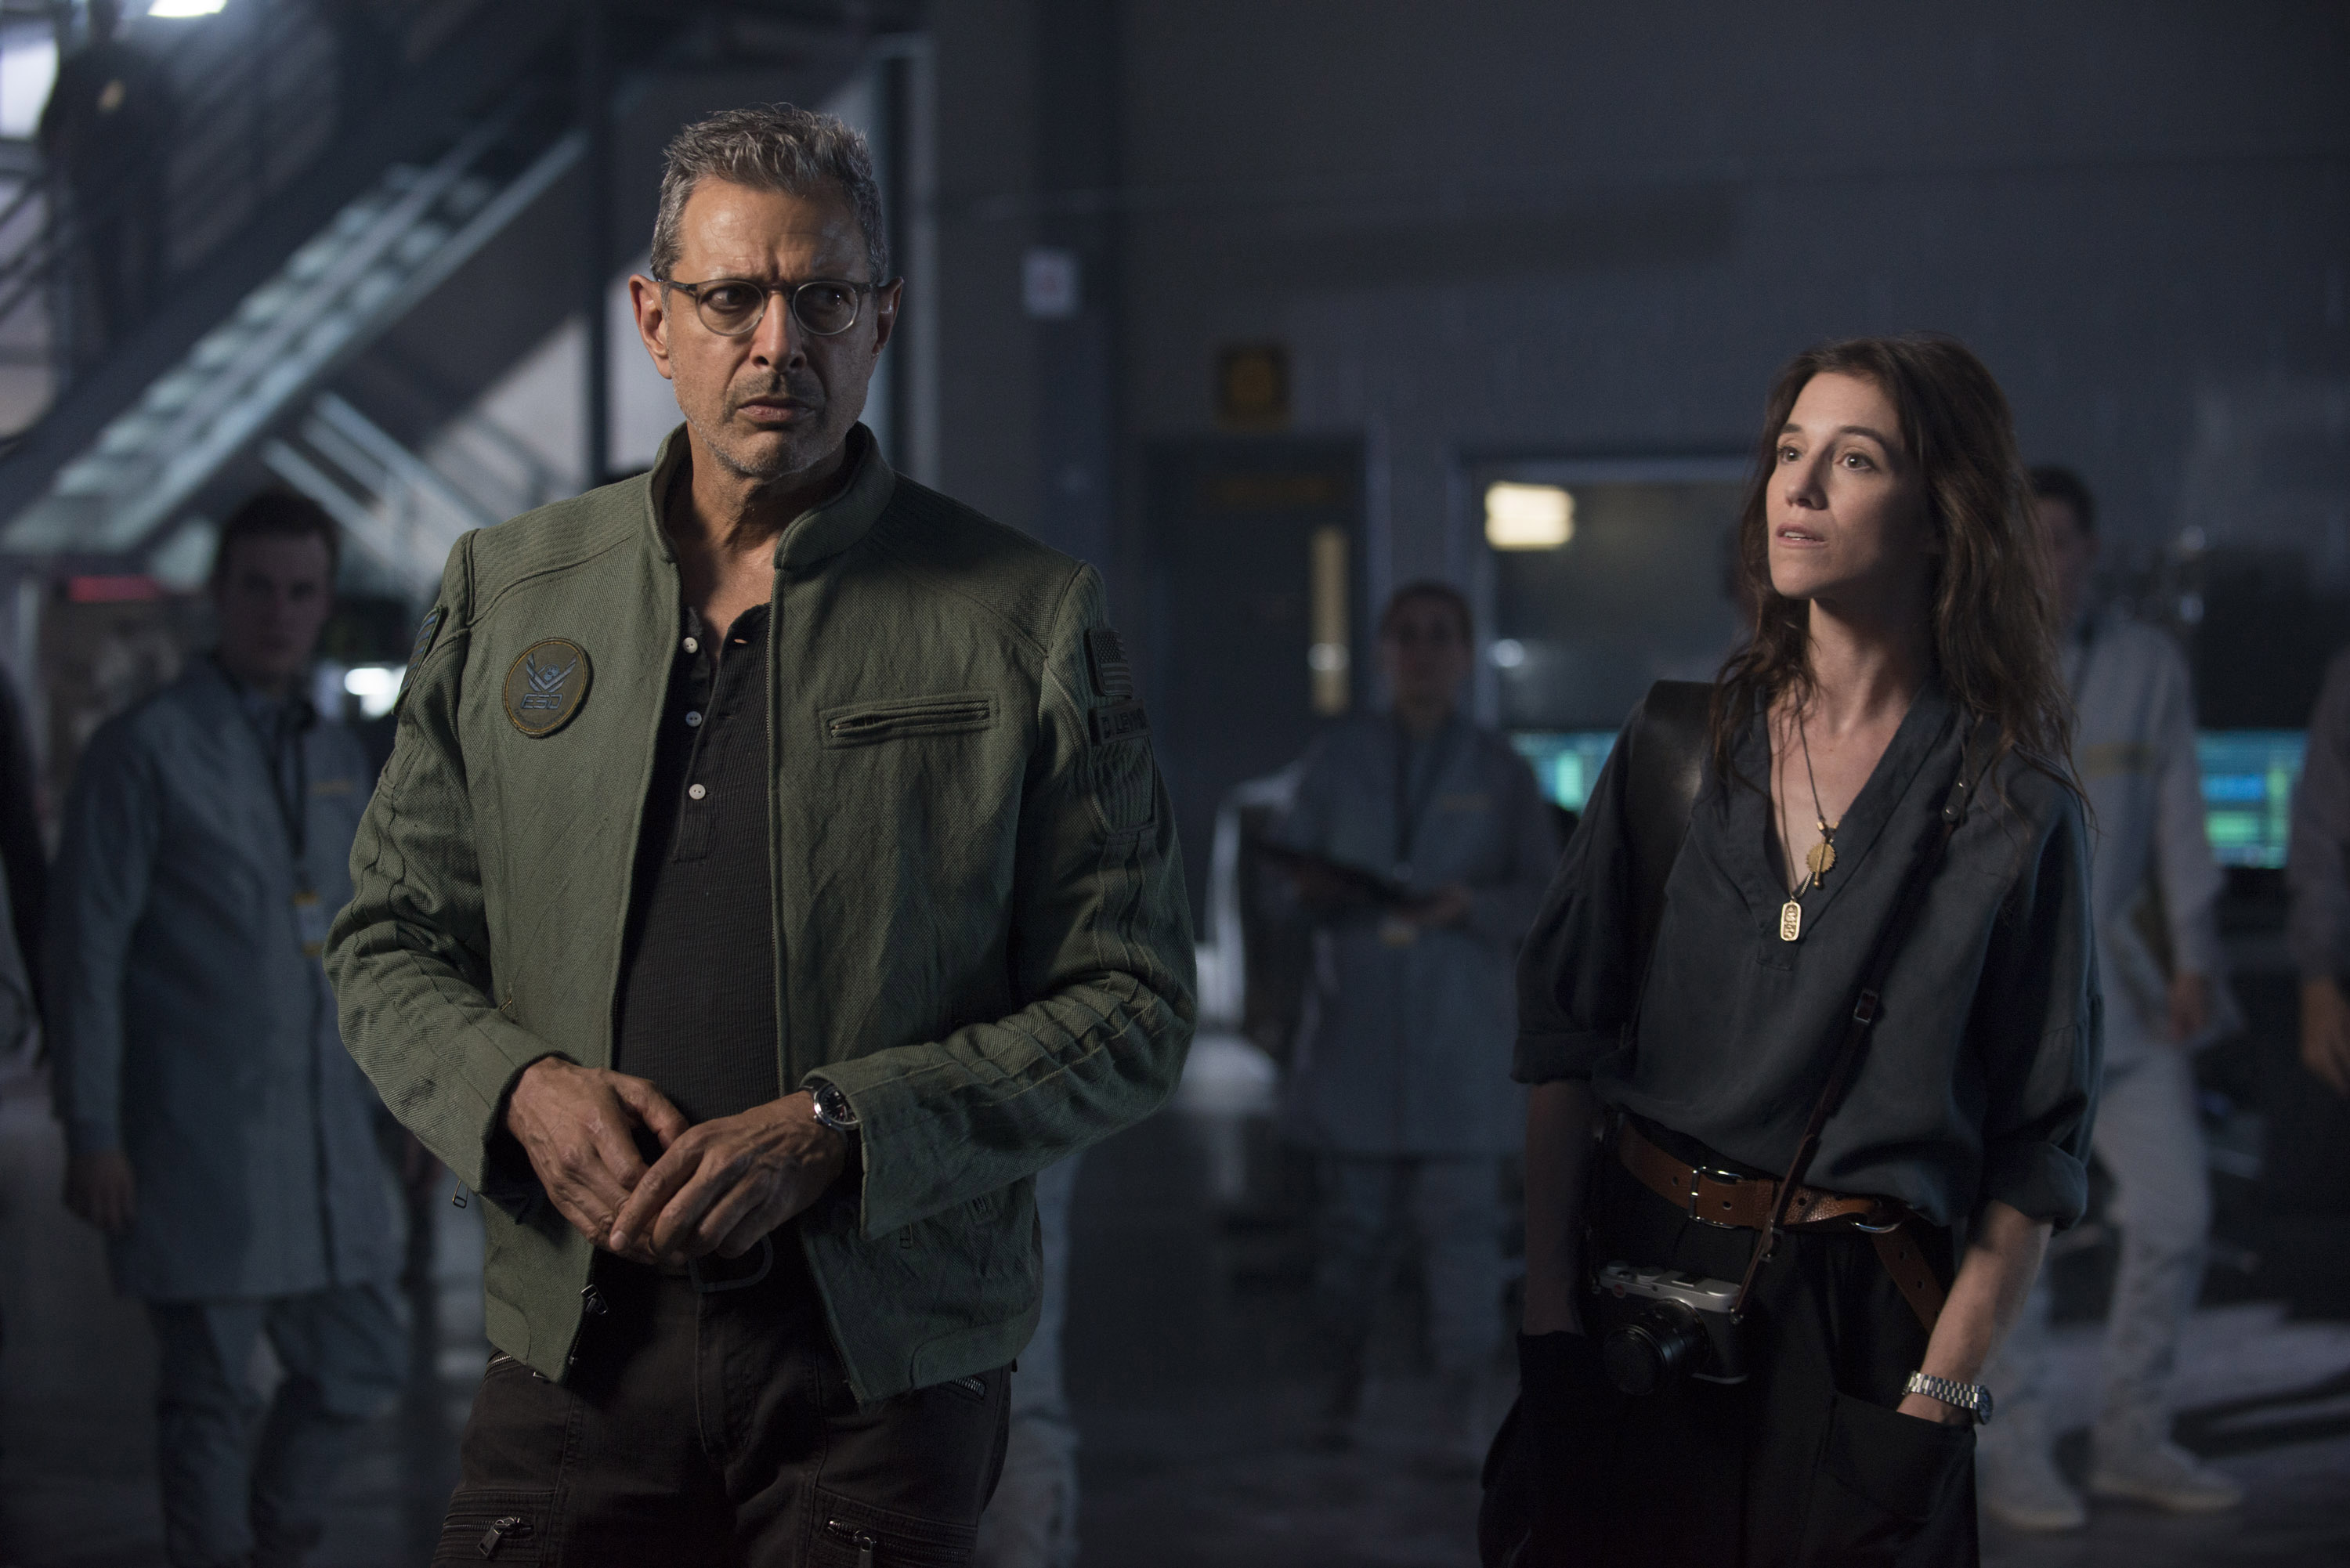 independence-day-resurgence-jeff-goldblum-charlotte-gainsbourgh.jpg